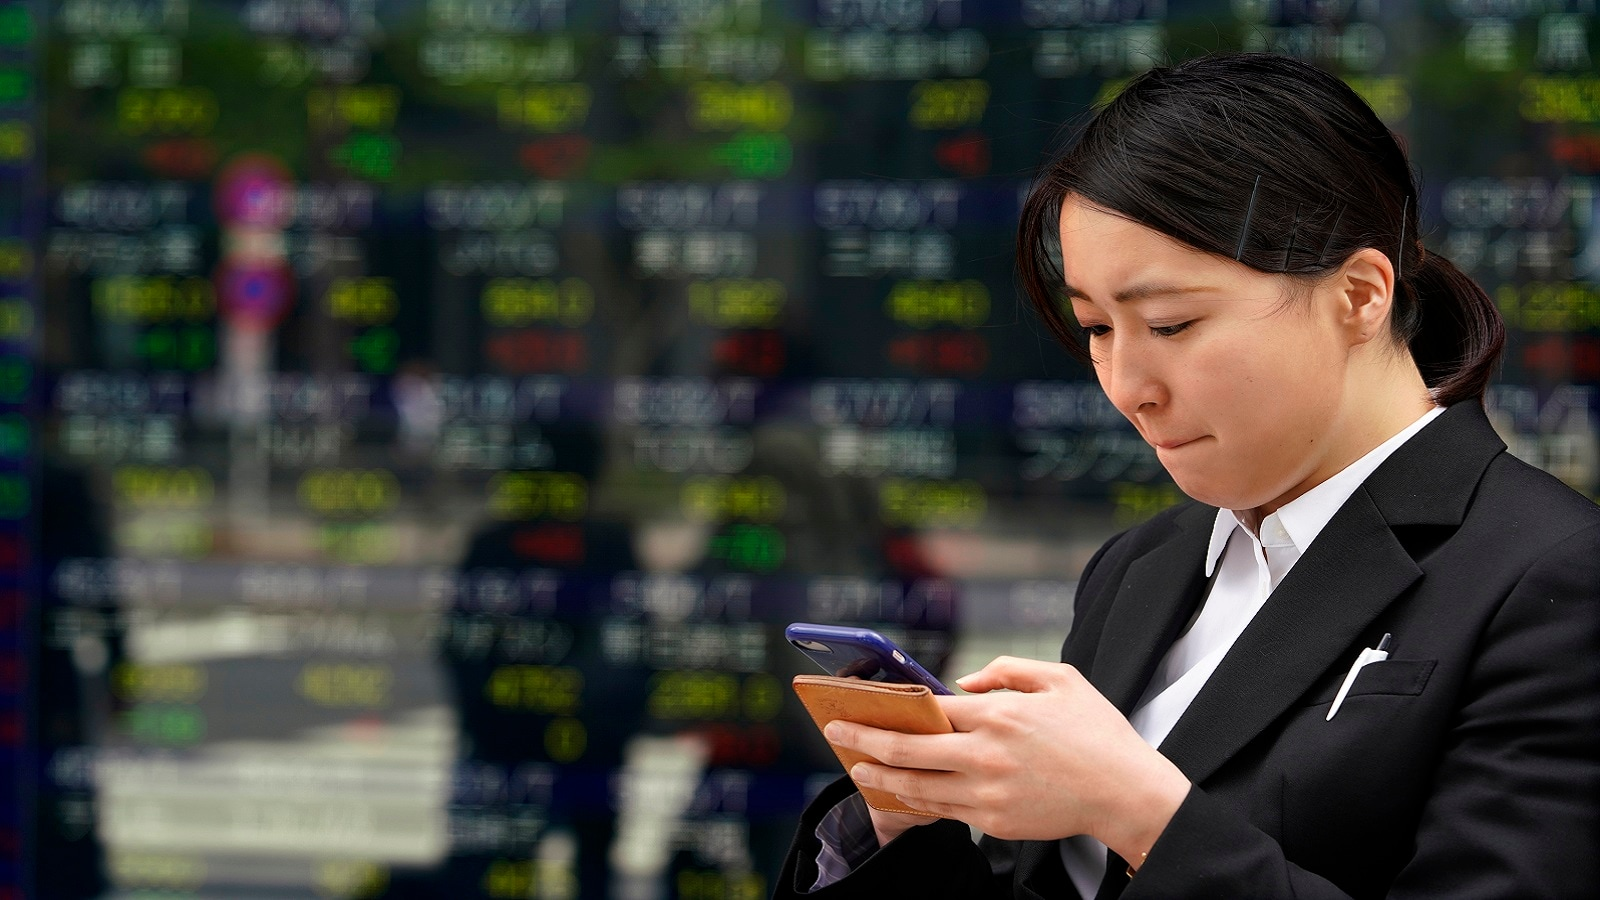 1. Asian stocks:MSCI's broadest index of Asia-Pacific shares outside Japan shed 0.3 percent, easing back from a four-month peak touched the previous day, reported Reuters. The index stood little changed on the week. Japan's Nikkei fell 1.2 percent.(Image: Reuters)